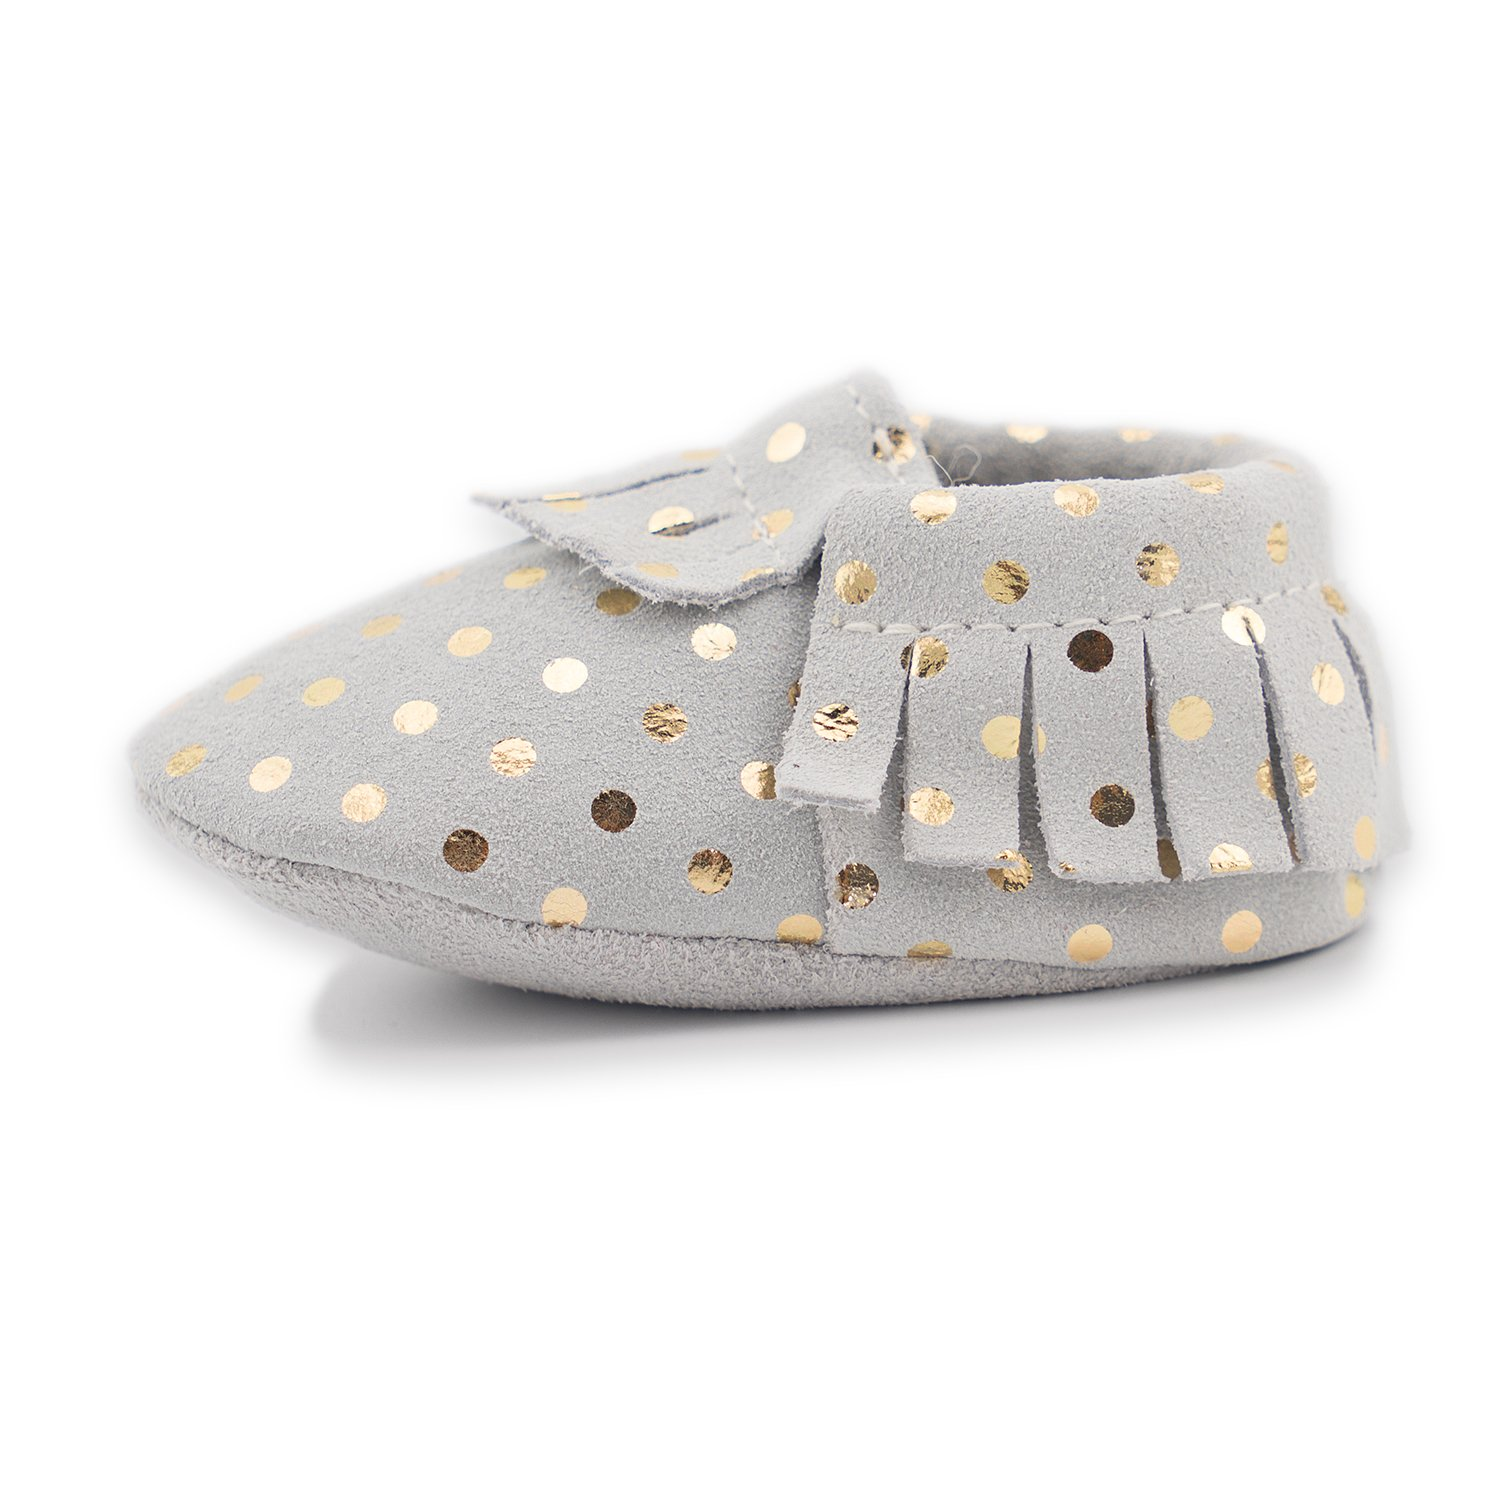 CoCoCute Baby Moccasins Soft Leather Sole Infant Shoes and Toddler Moccasins for Boys and Girls (0-6 Month, Gray and Gold) by CoCoCute